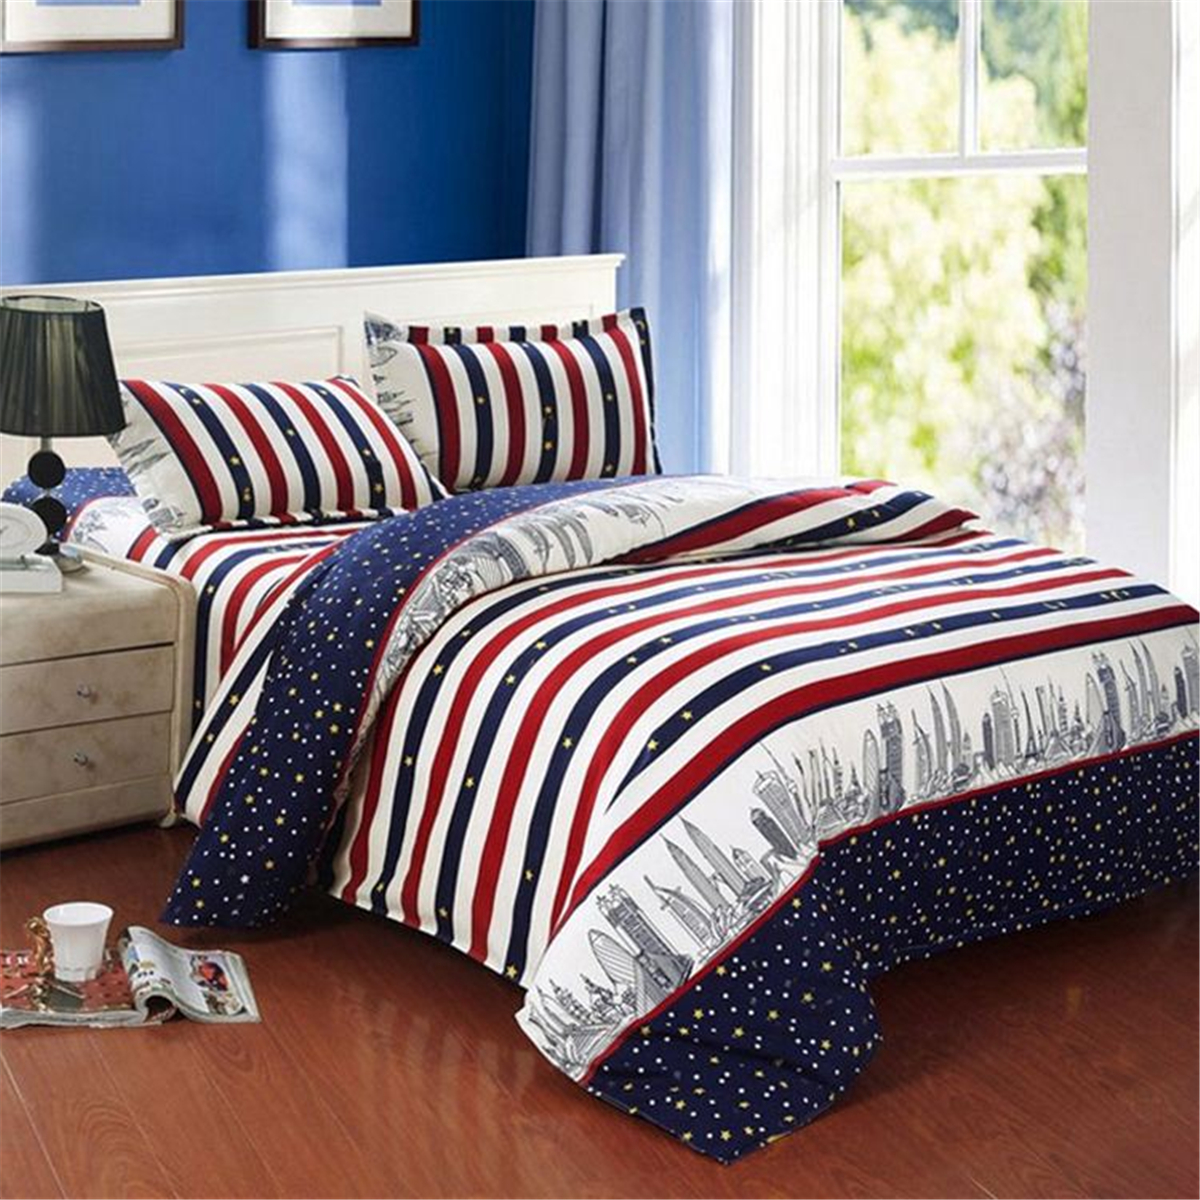 King Quilt Size Duvet Quilt Cover Bedding Set Single Double Queen King